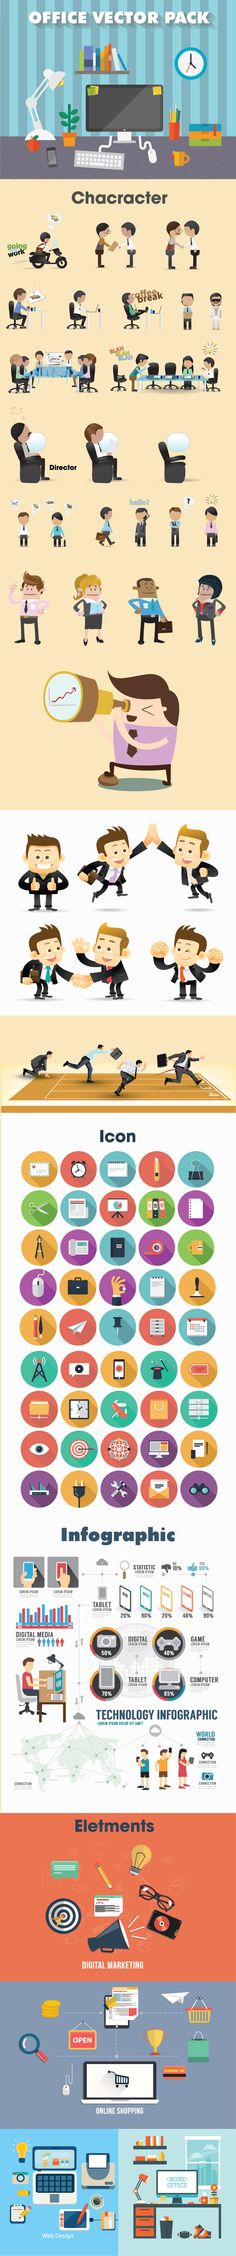 Office vectors pack, character, icon, shape, infographic, template, office, vector, pack, set, flat, icon, Creatily - Creative Marketplaces